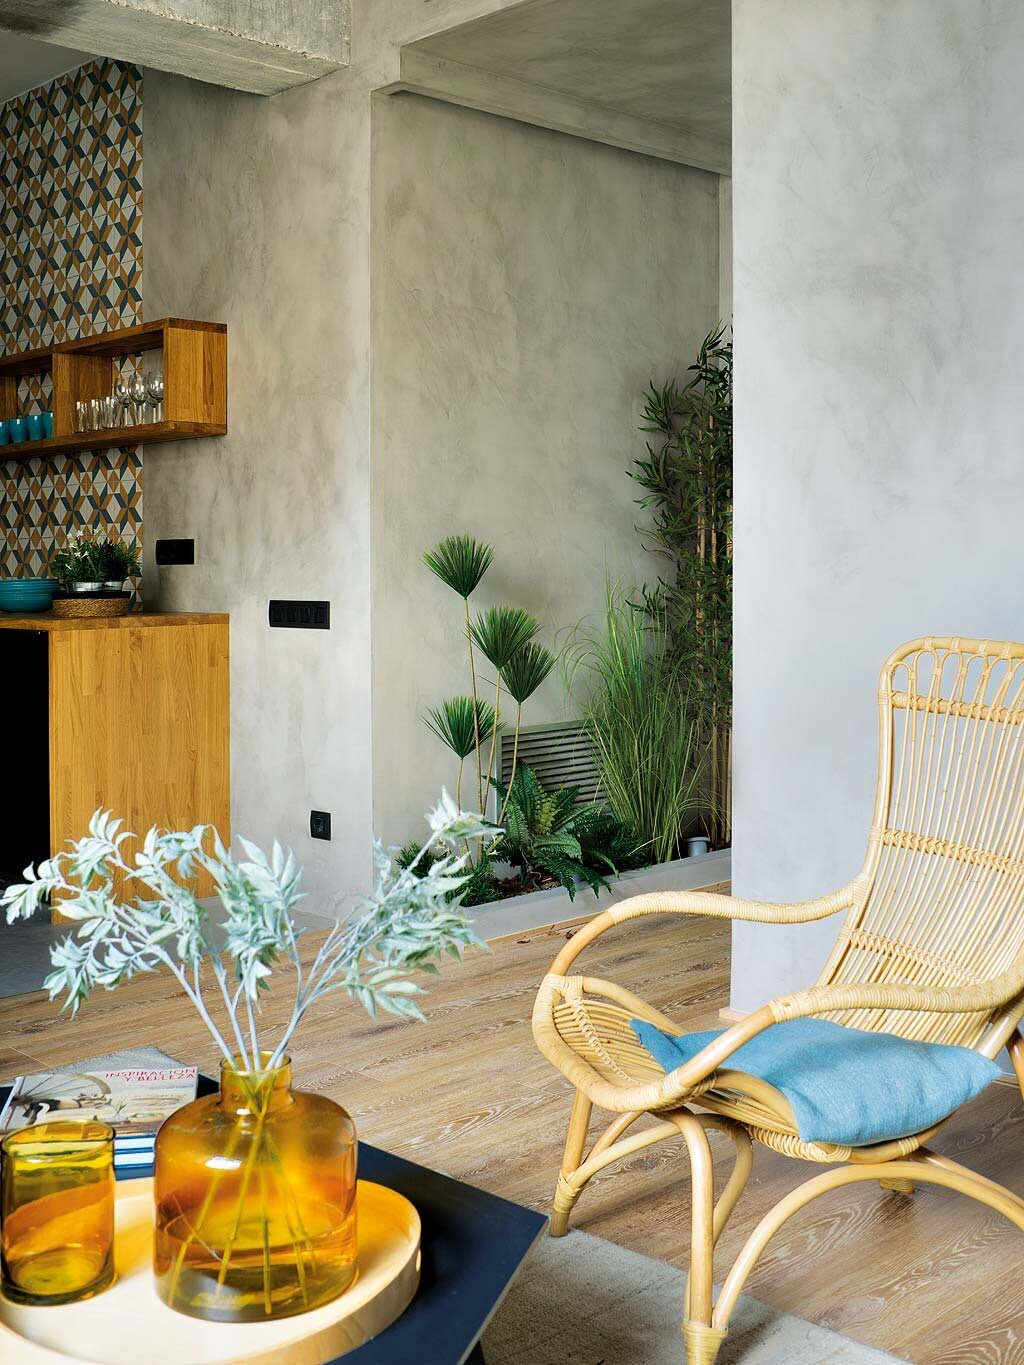 Inspiring Spanish Apartment with Raw Industrial Details 2